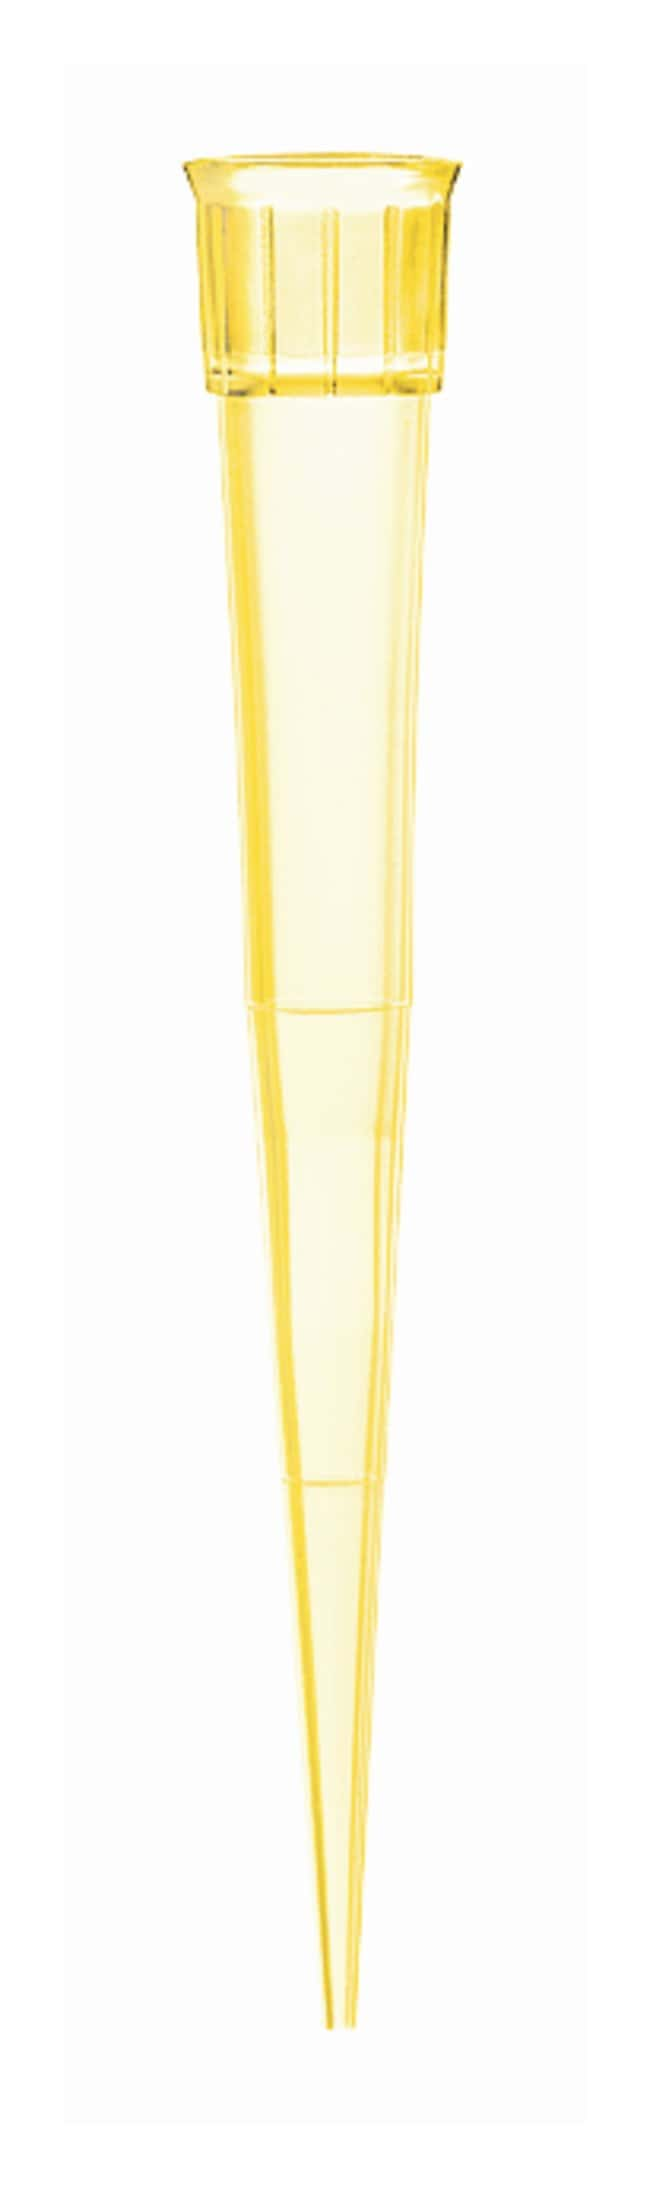 BRAND™Pipet Tips, 2 to 200uL: Standard Retention Yellow; Bulk packed in one bag of 10,000 pieces products